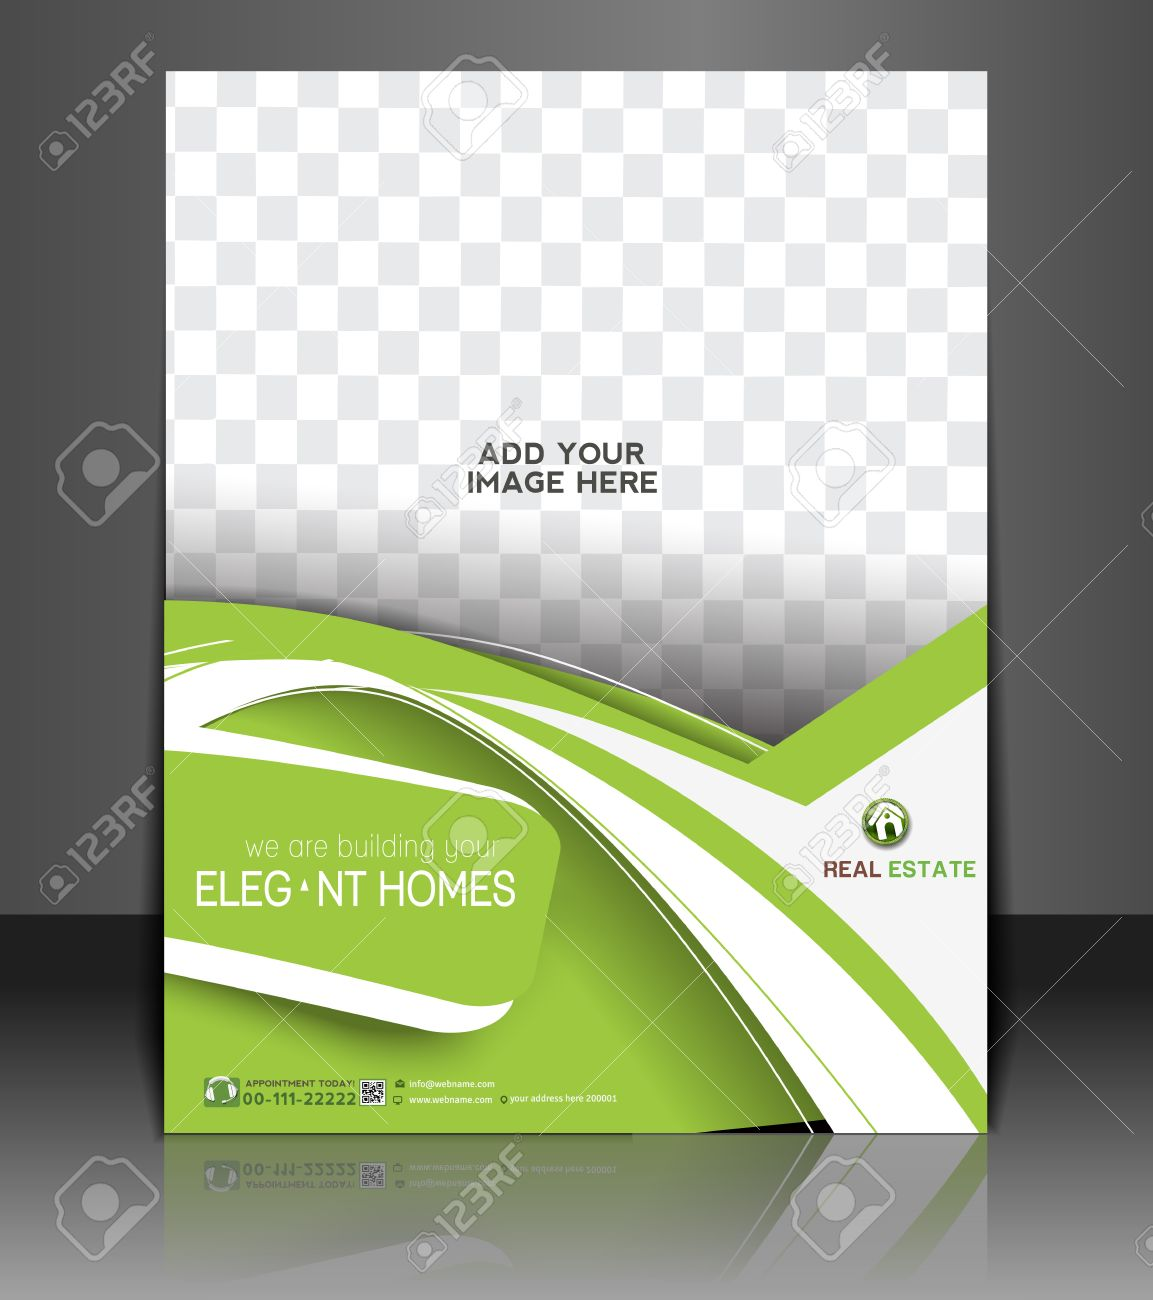 Real Estate Agent Flyer & Poster Template Design Stock Vector - 28516680